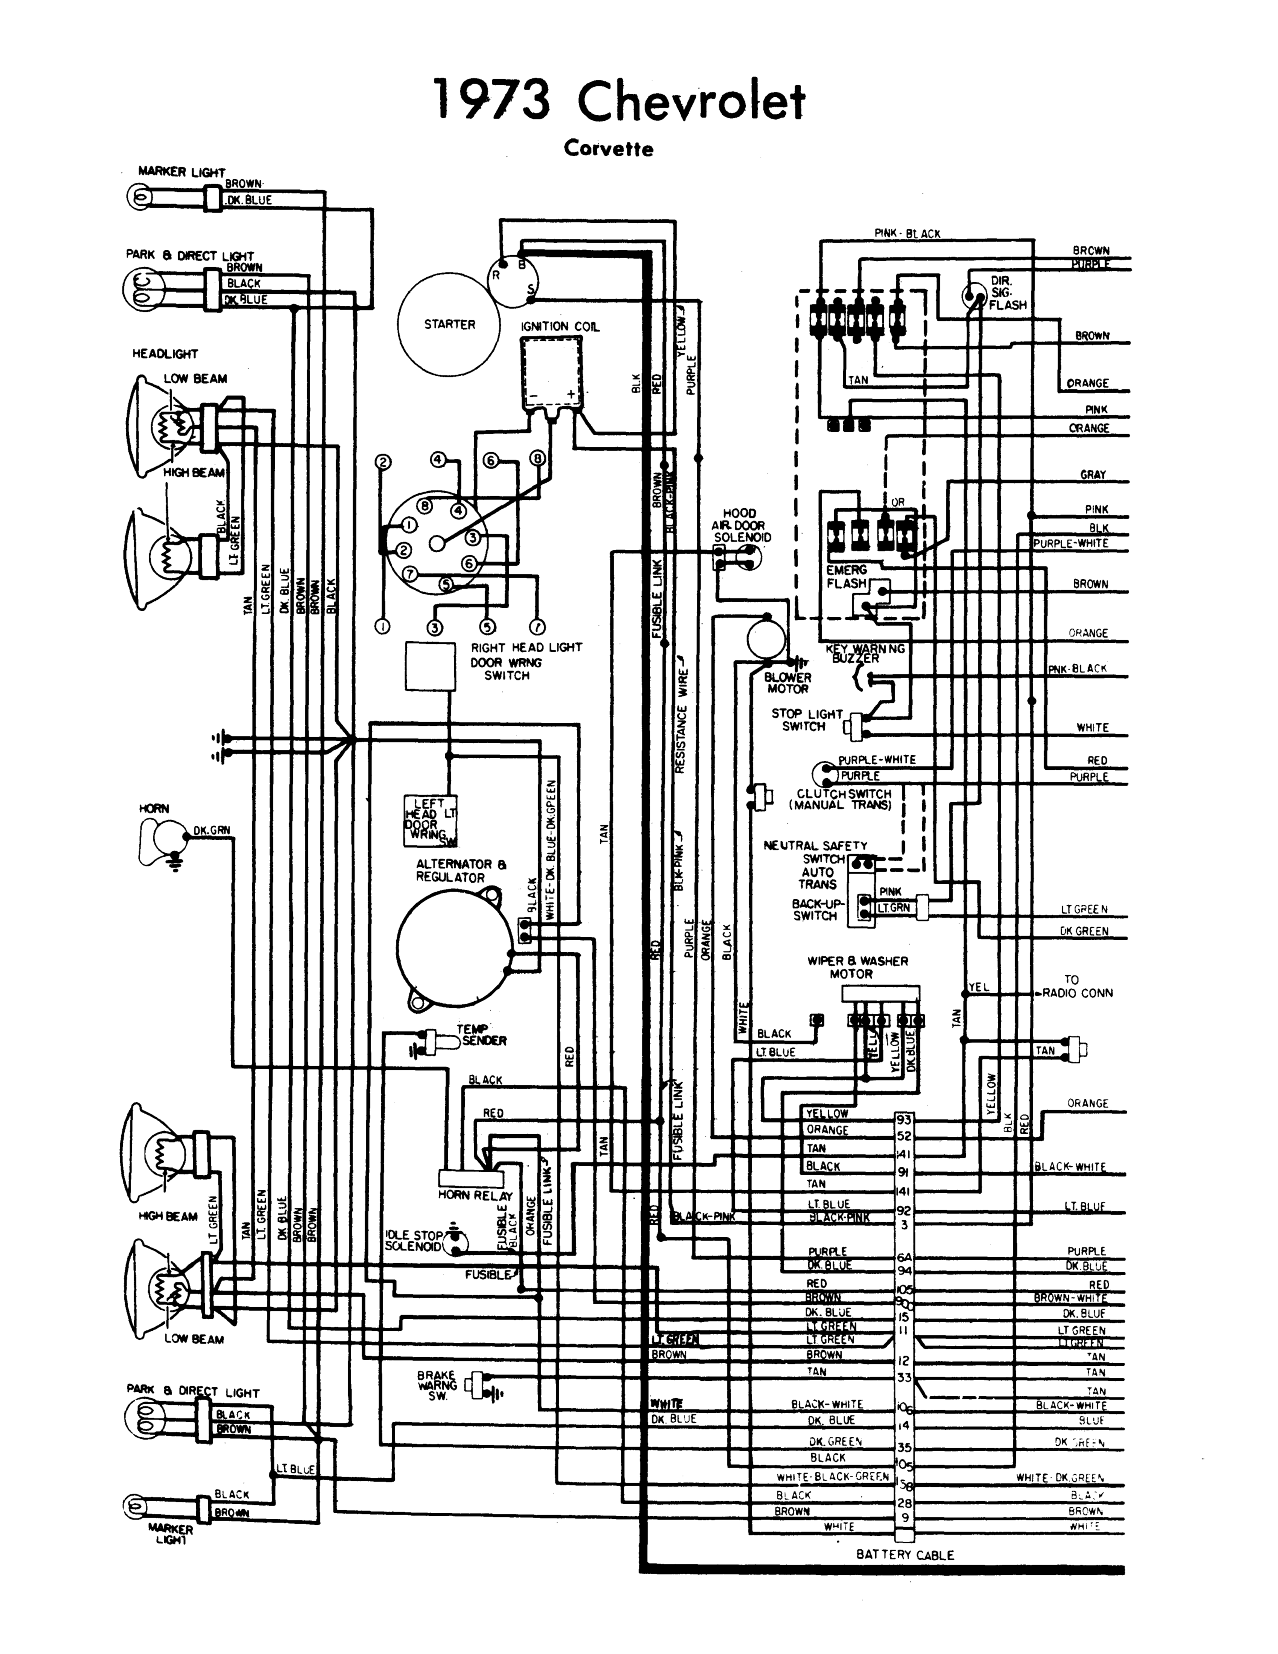 small resolution of wiring diagram 1973 corvette chevy corvette 1973 wiring diagrams 1974 corvette engine wiring diagram corvette engine wiring diagram